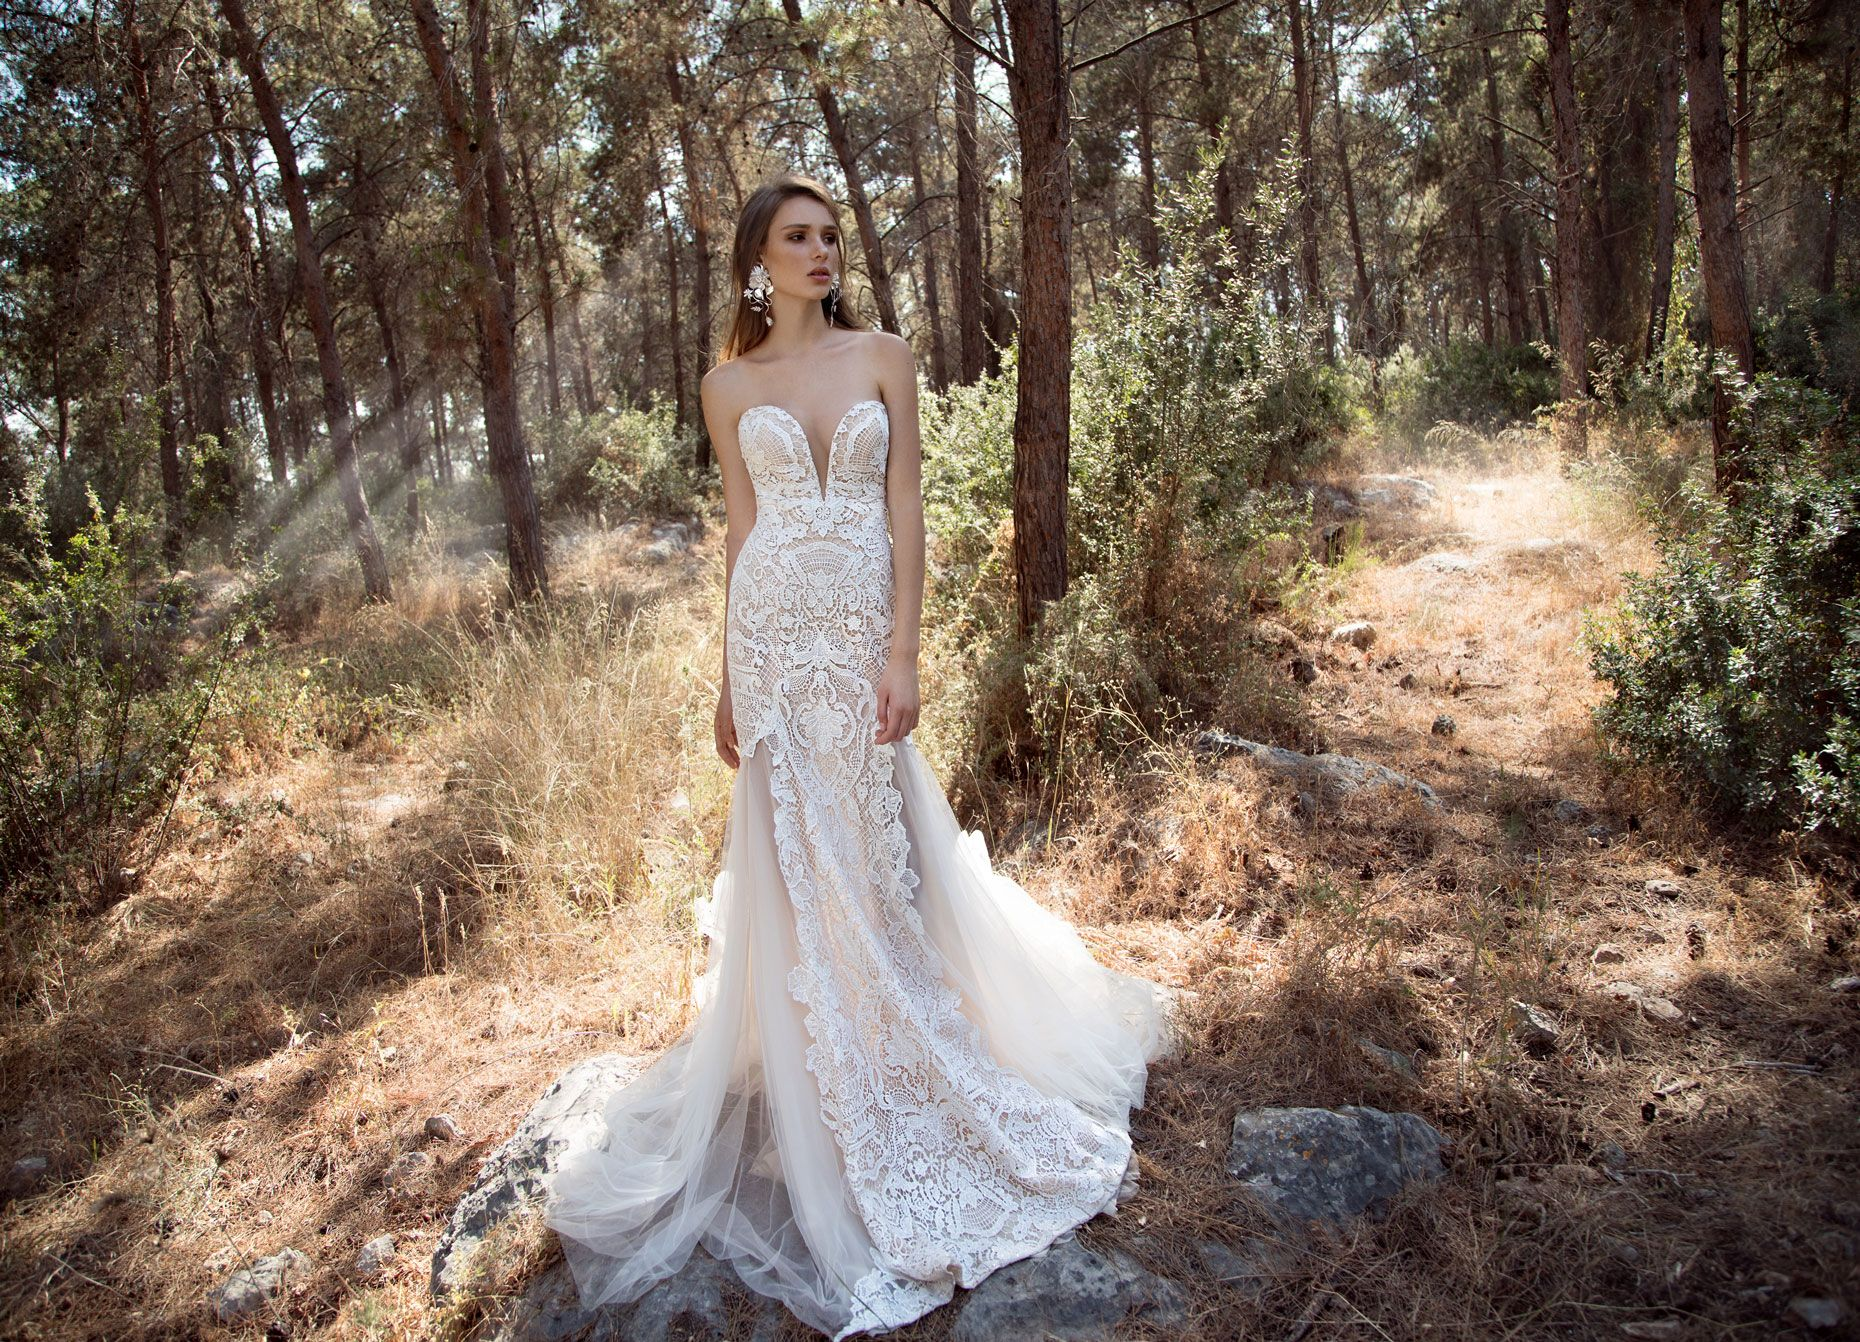 Sheer top wedding dress  Multi layered aline sheer dress with lace on top A strapless gown